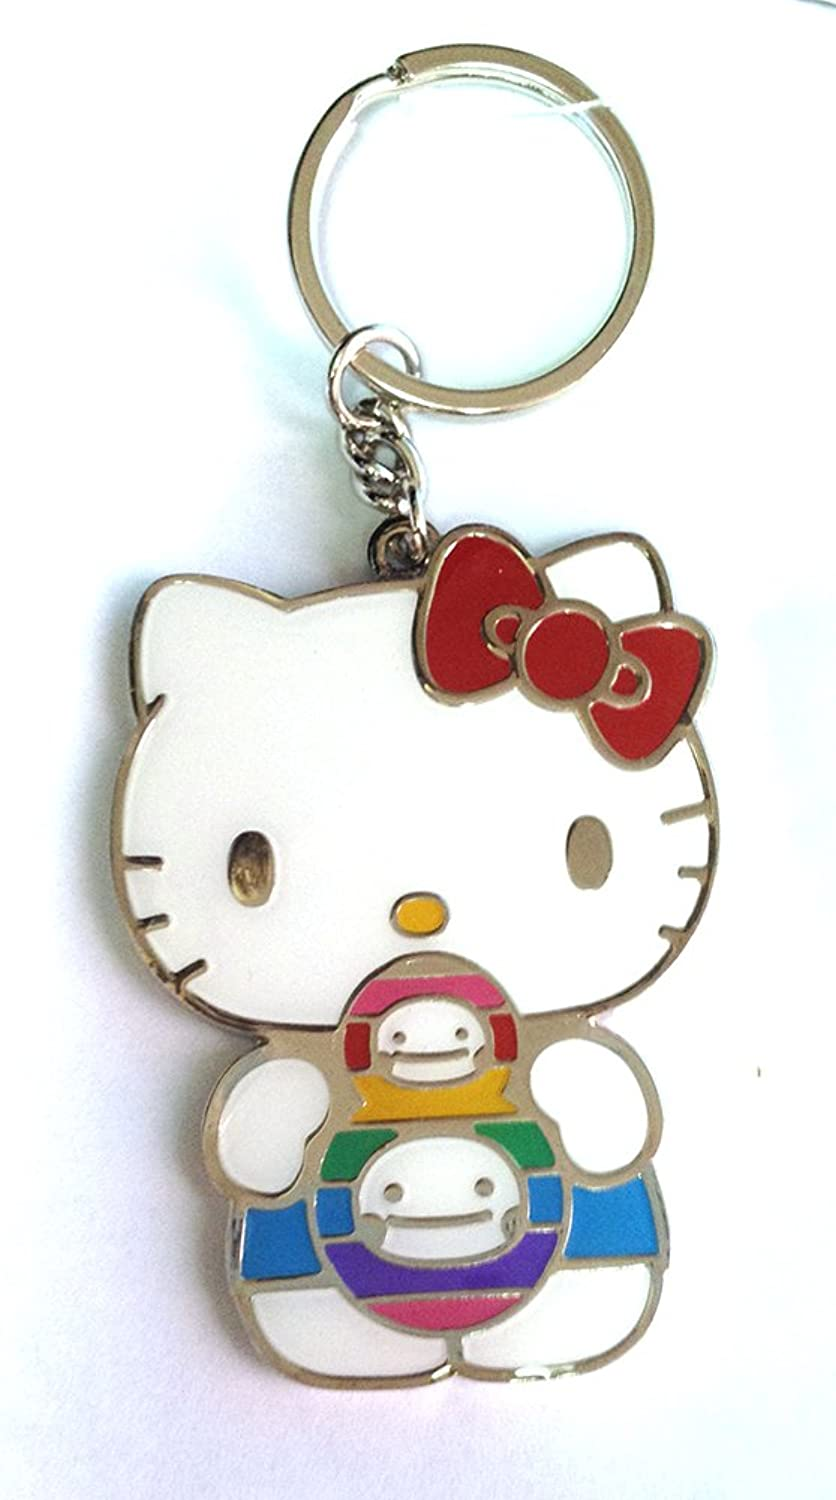 Hello Kitty X Friendswithyou Collaborate to Make Wishes Come True Keychain : Hold Me